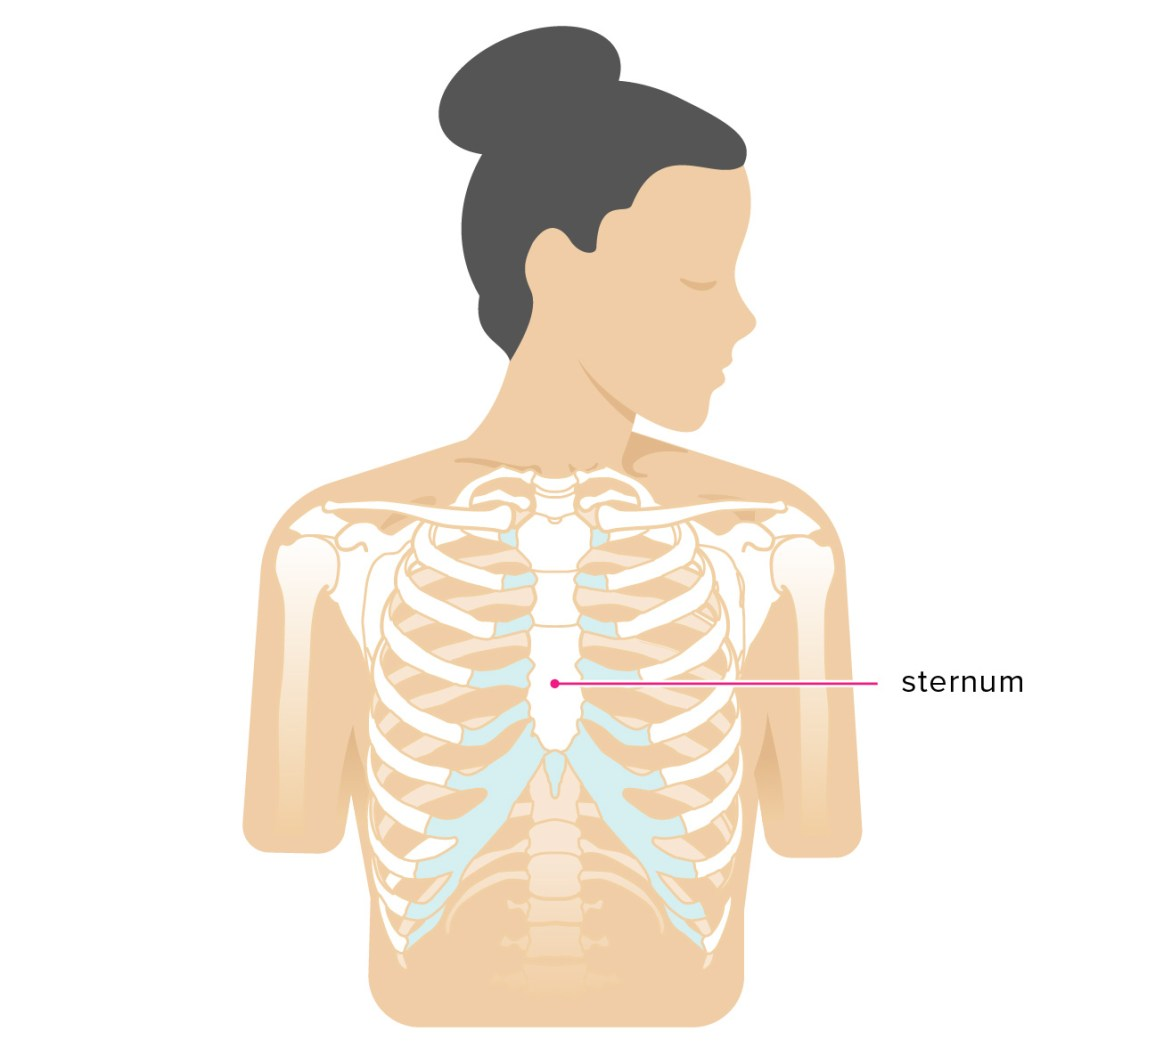 Broken Sternum: Symptoms, Car Accident, Treatment, and More